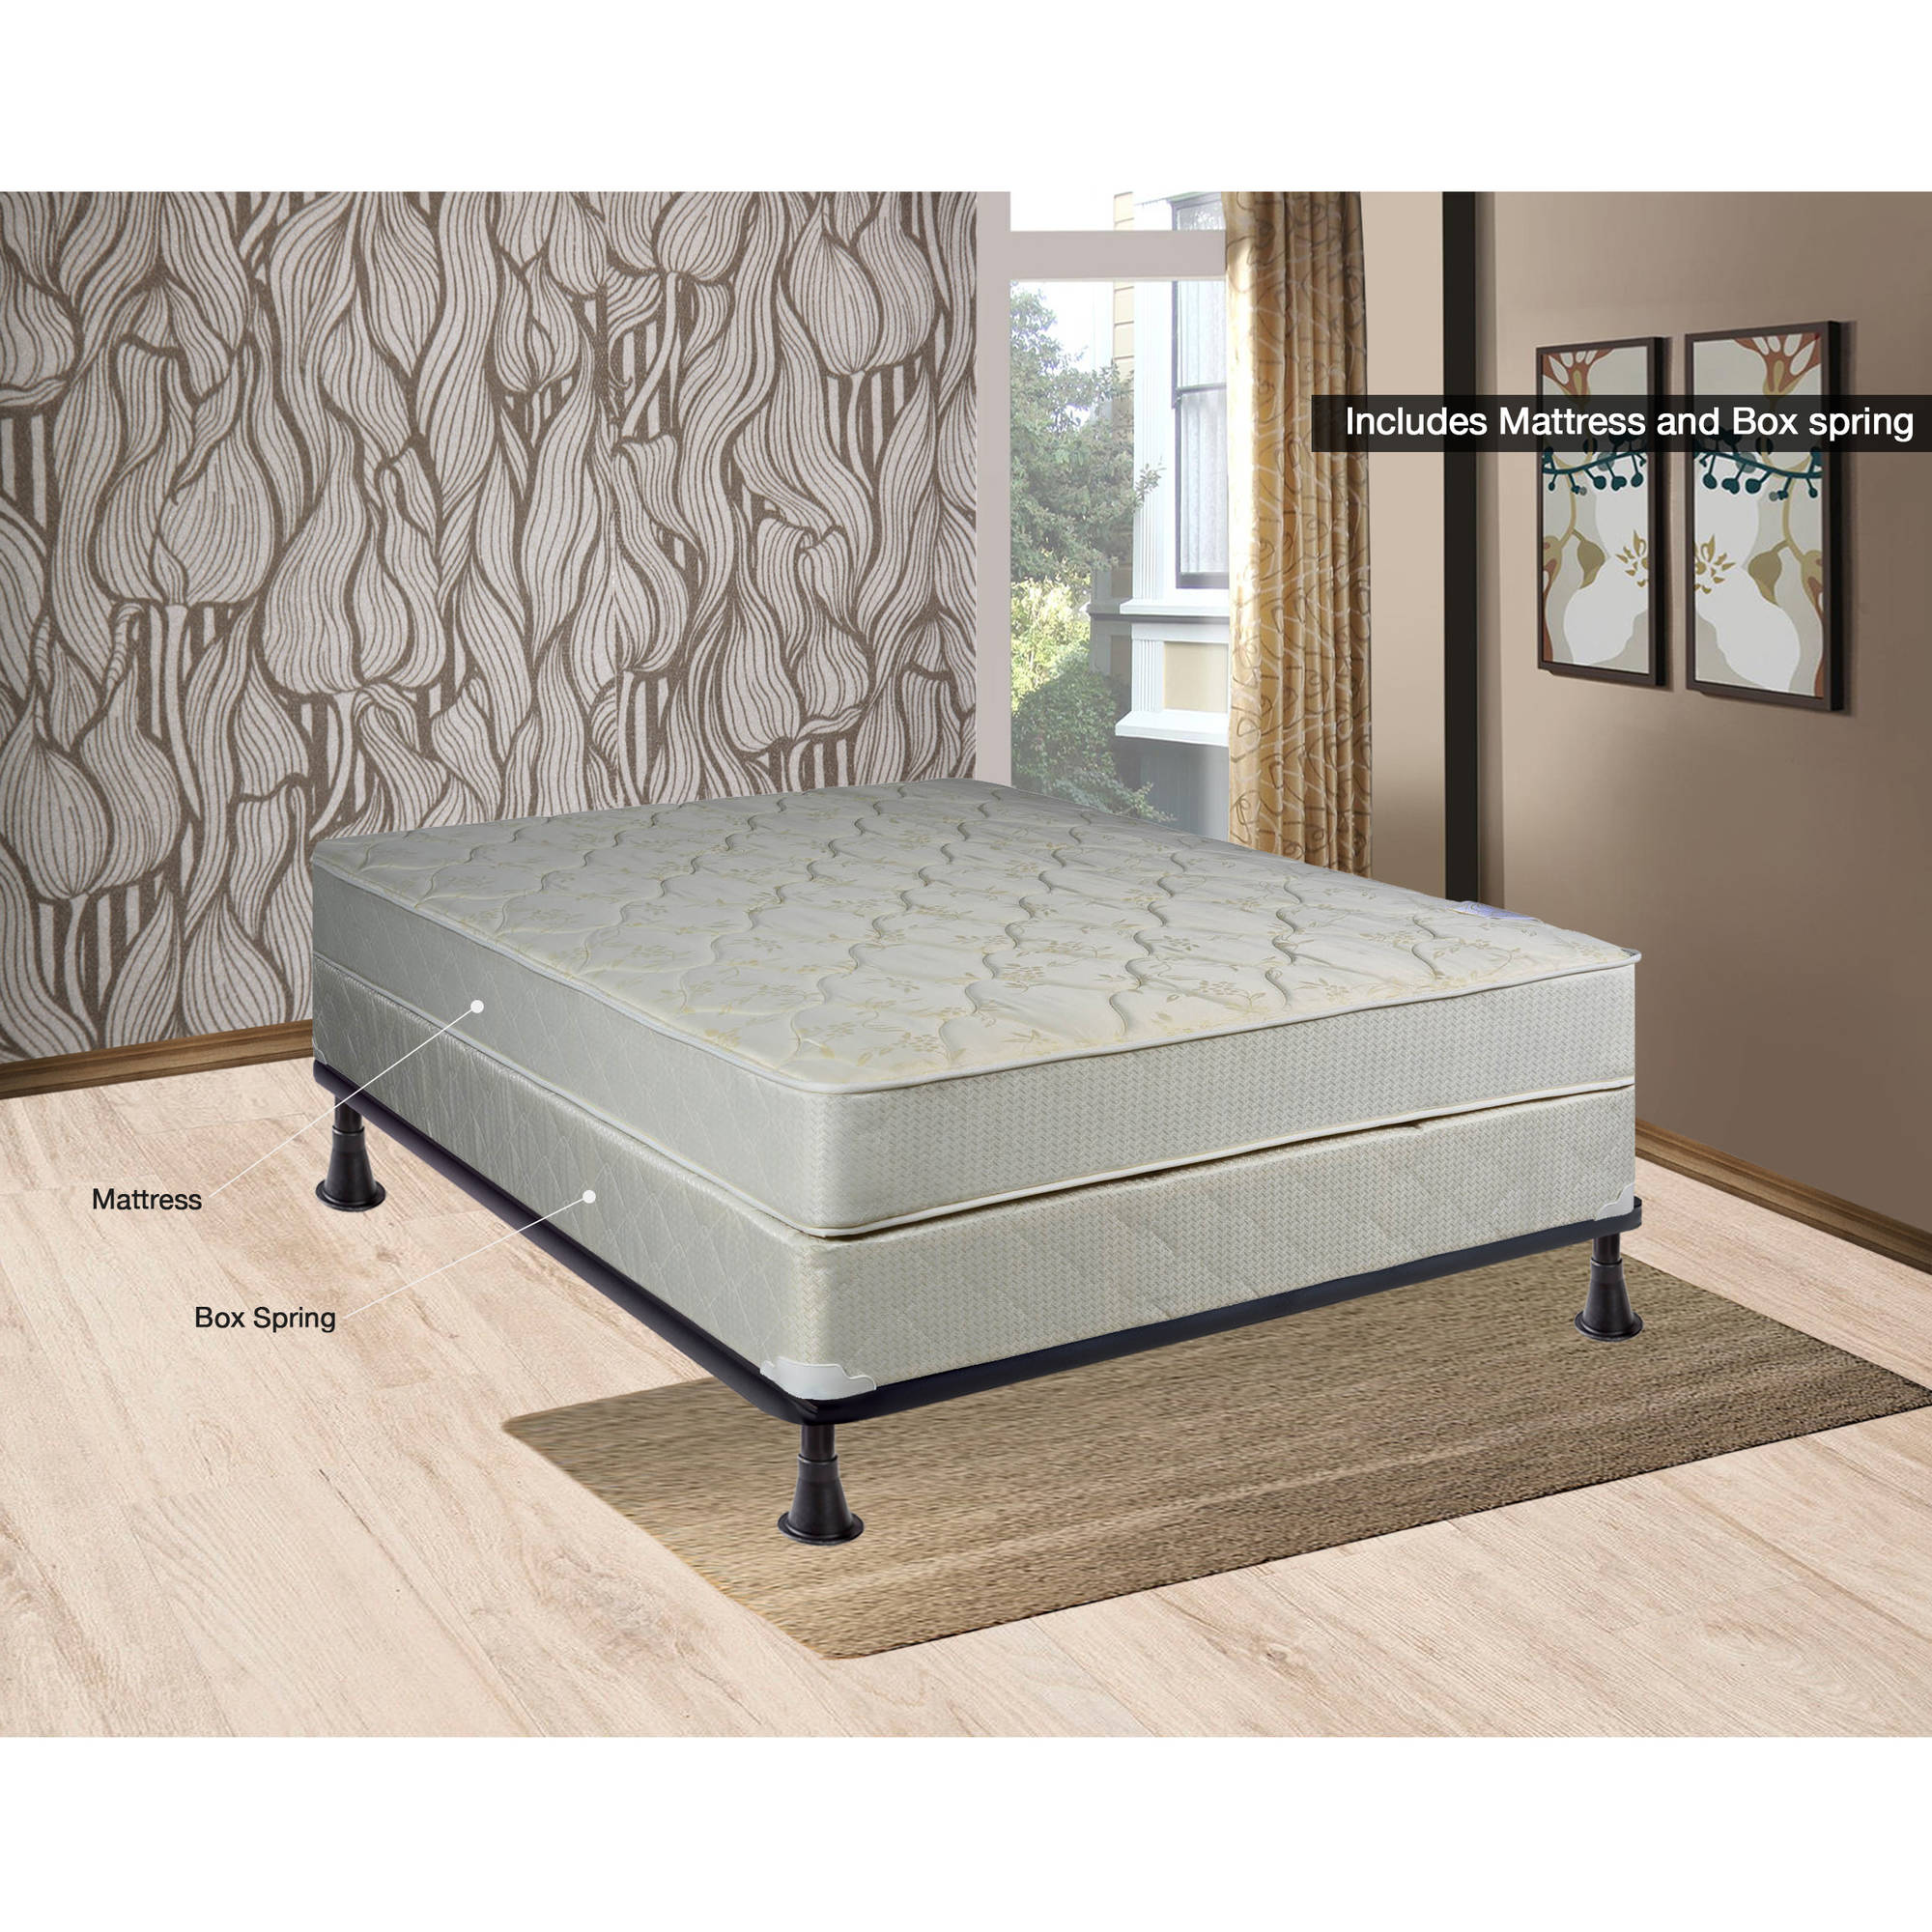 "Continental Sleep 8"" Fully Assembled Orthopedic Mattress and Box Spring, Multiple Sizes"